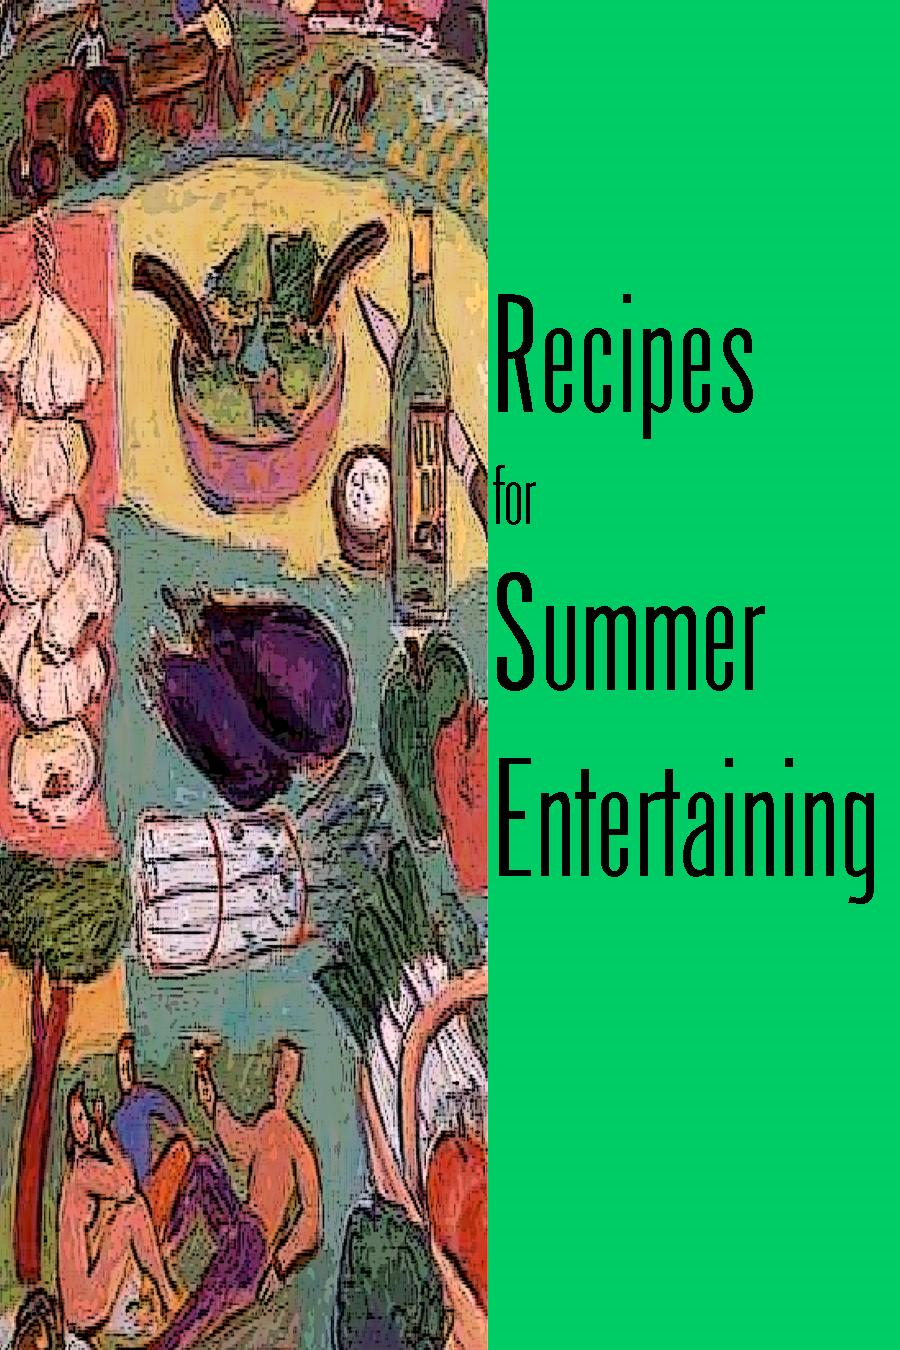 Recipes for Summer Entertaining